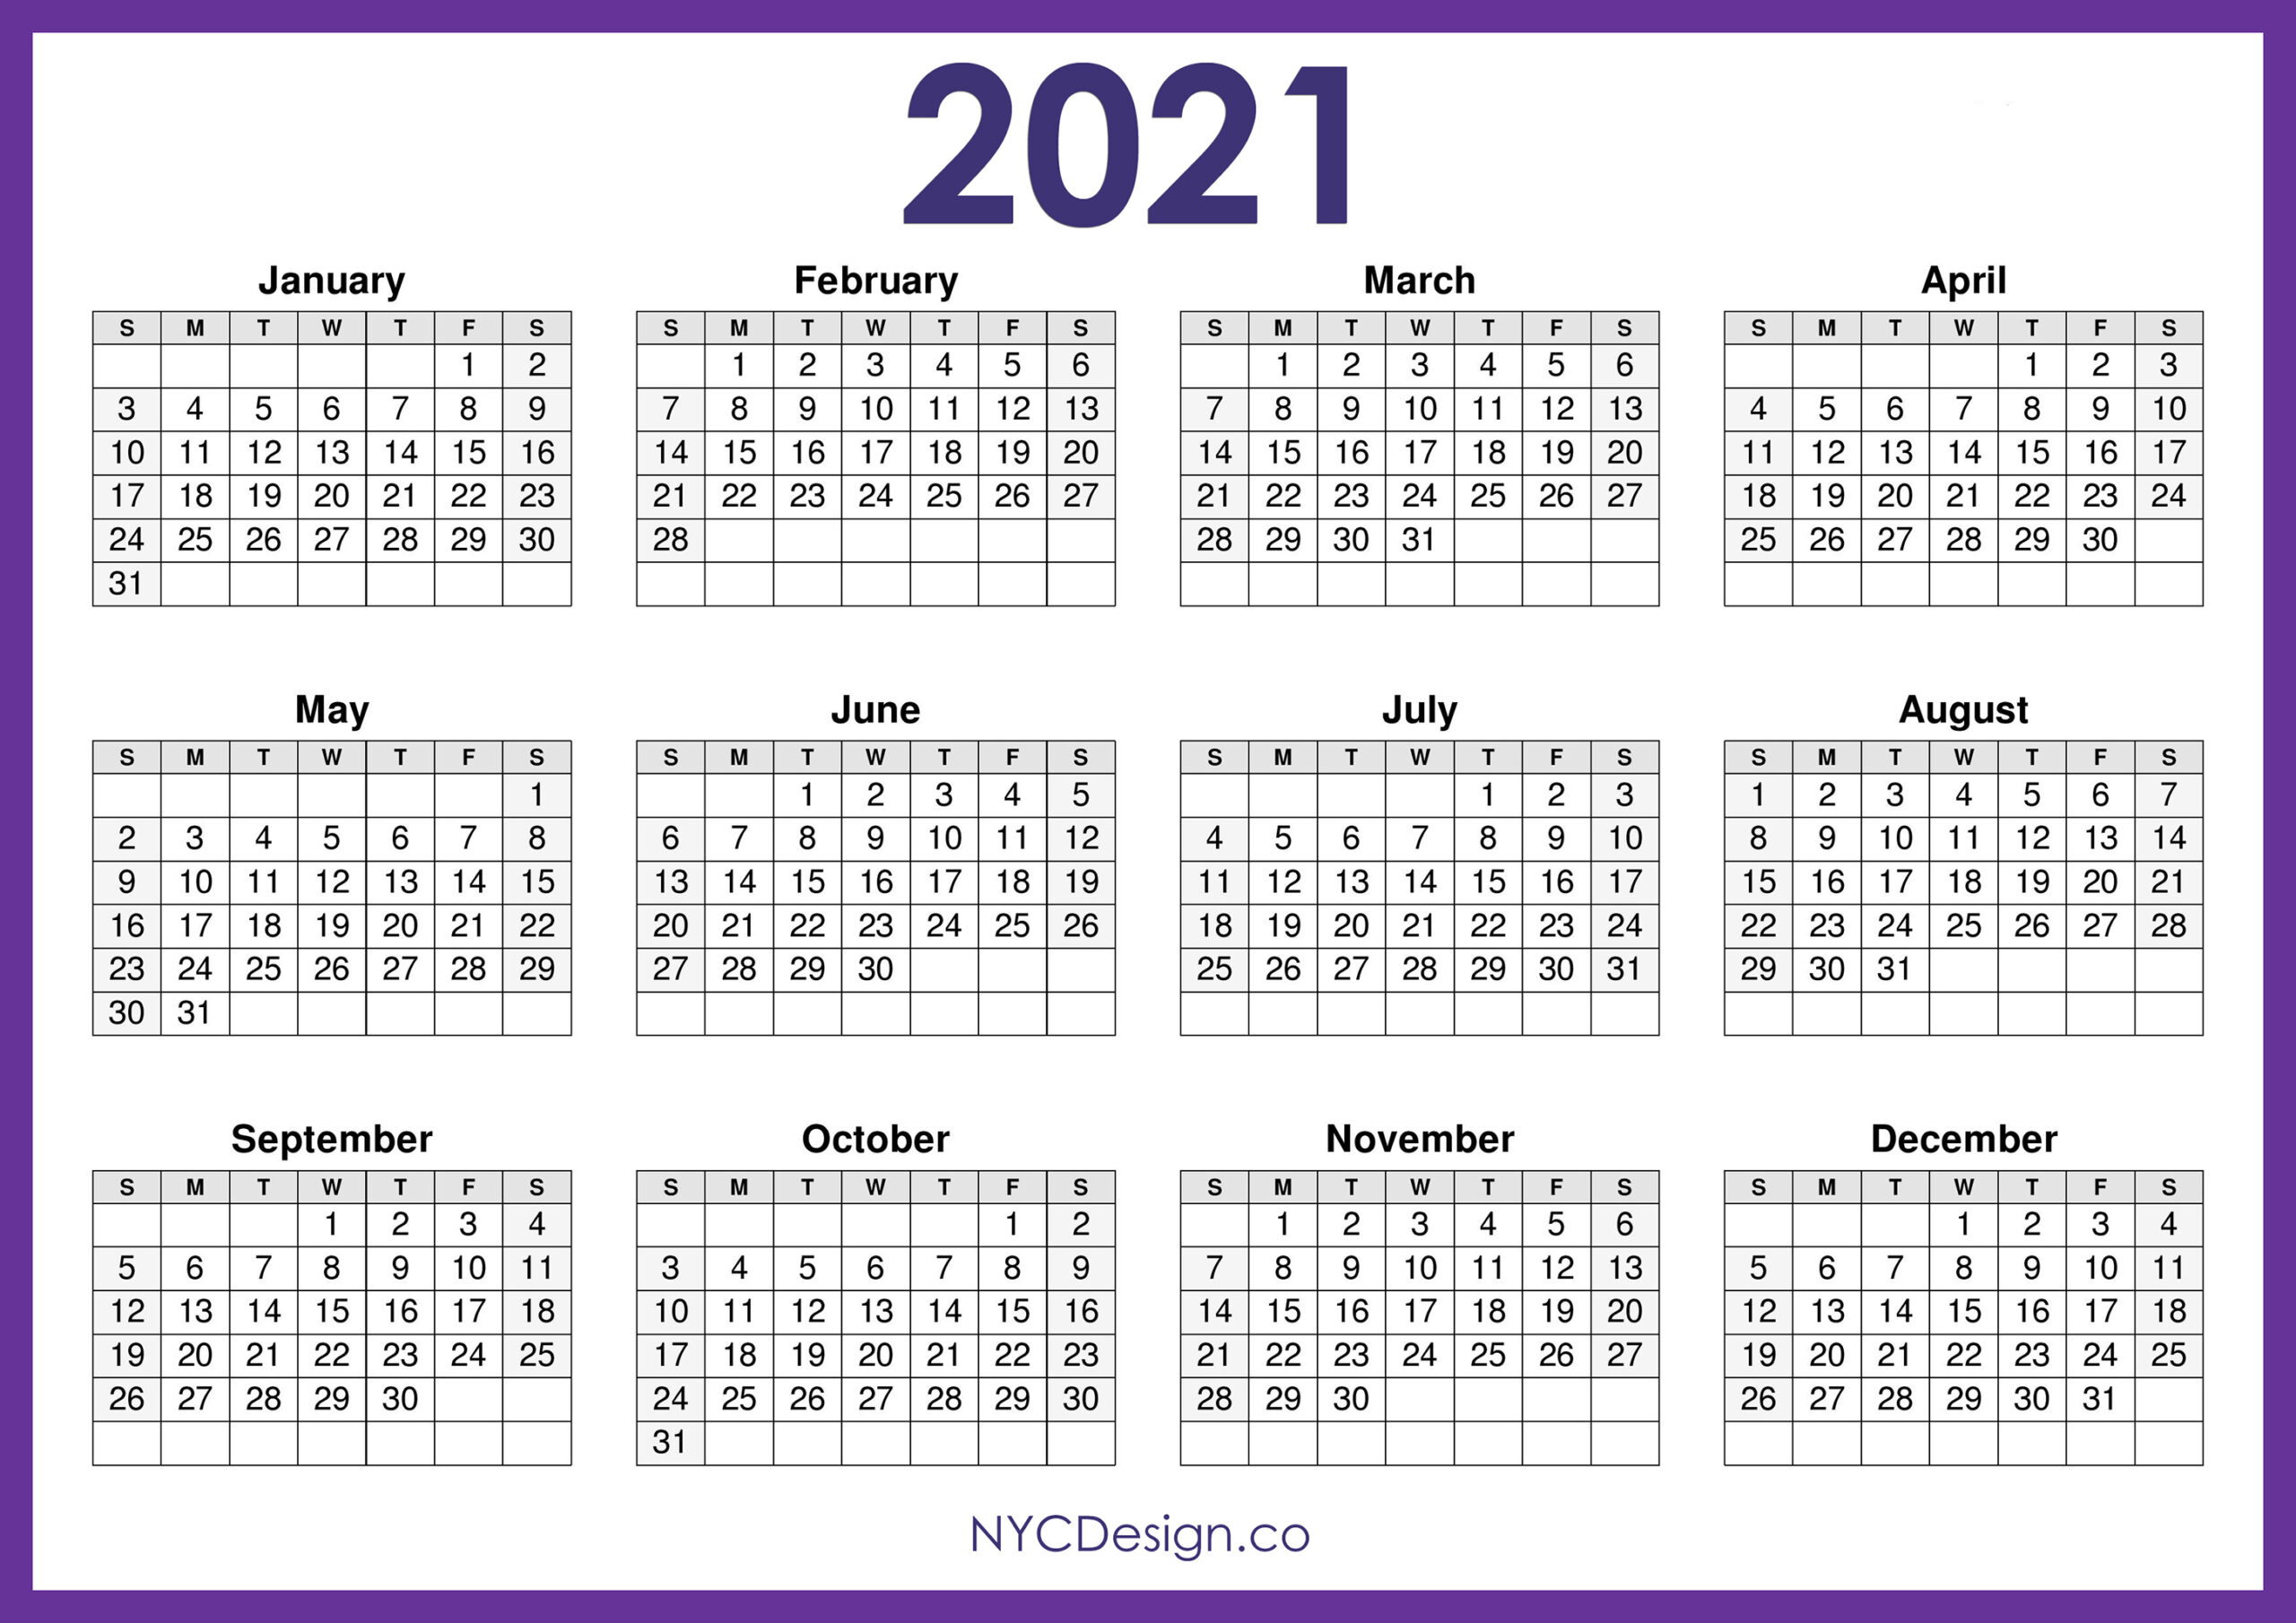 2021 Calendar Printable Free, Horizontal, Purple, Hd